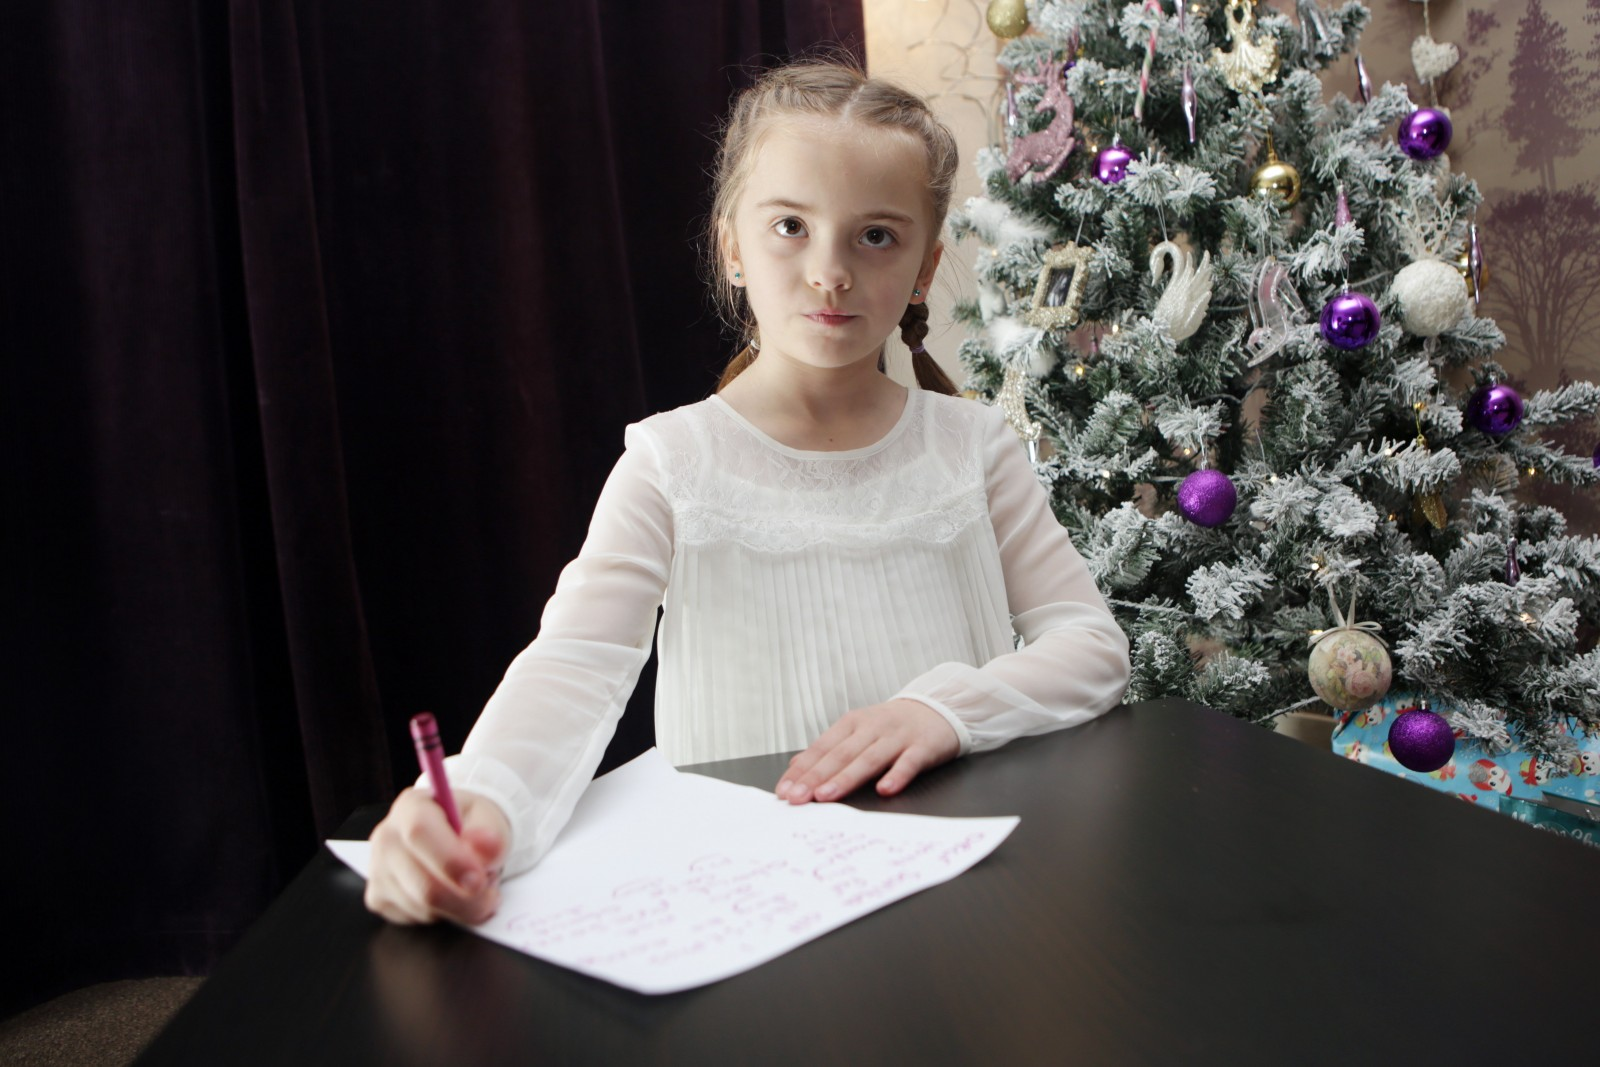 'All I want for Christmas is my dog back' Girl's heartbreaking letter to Santa